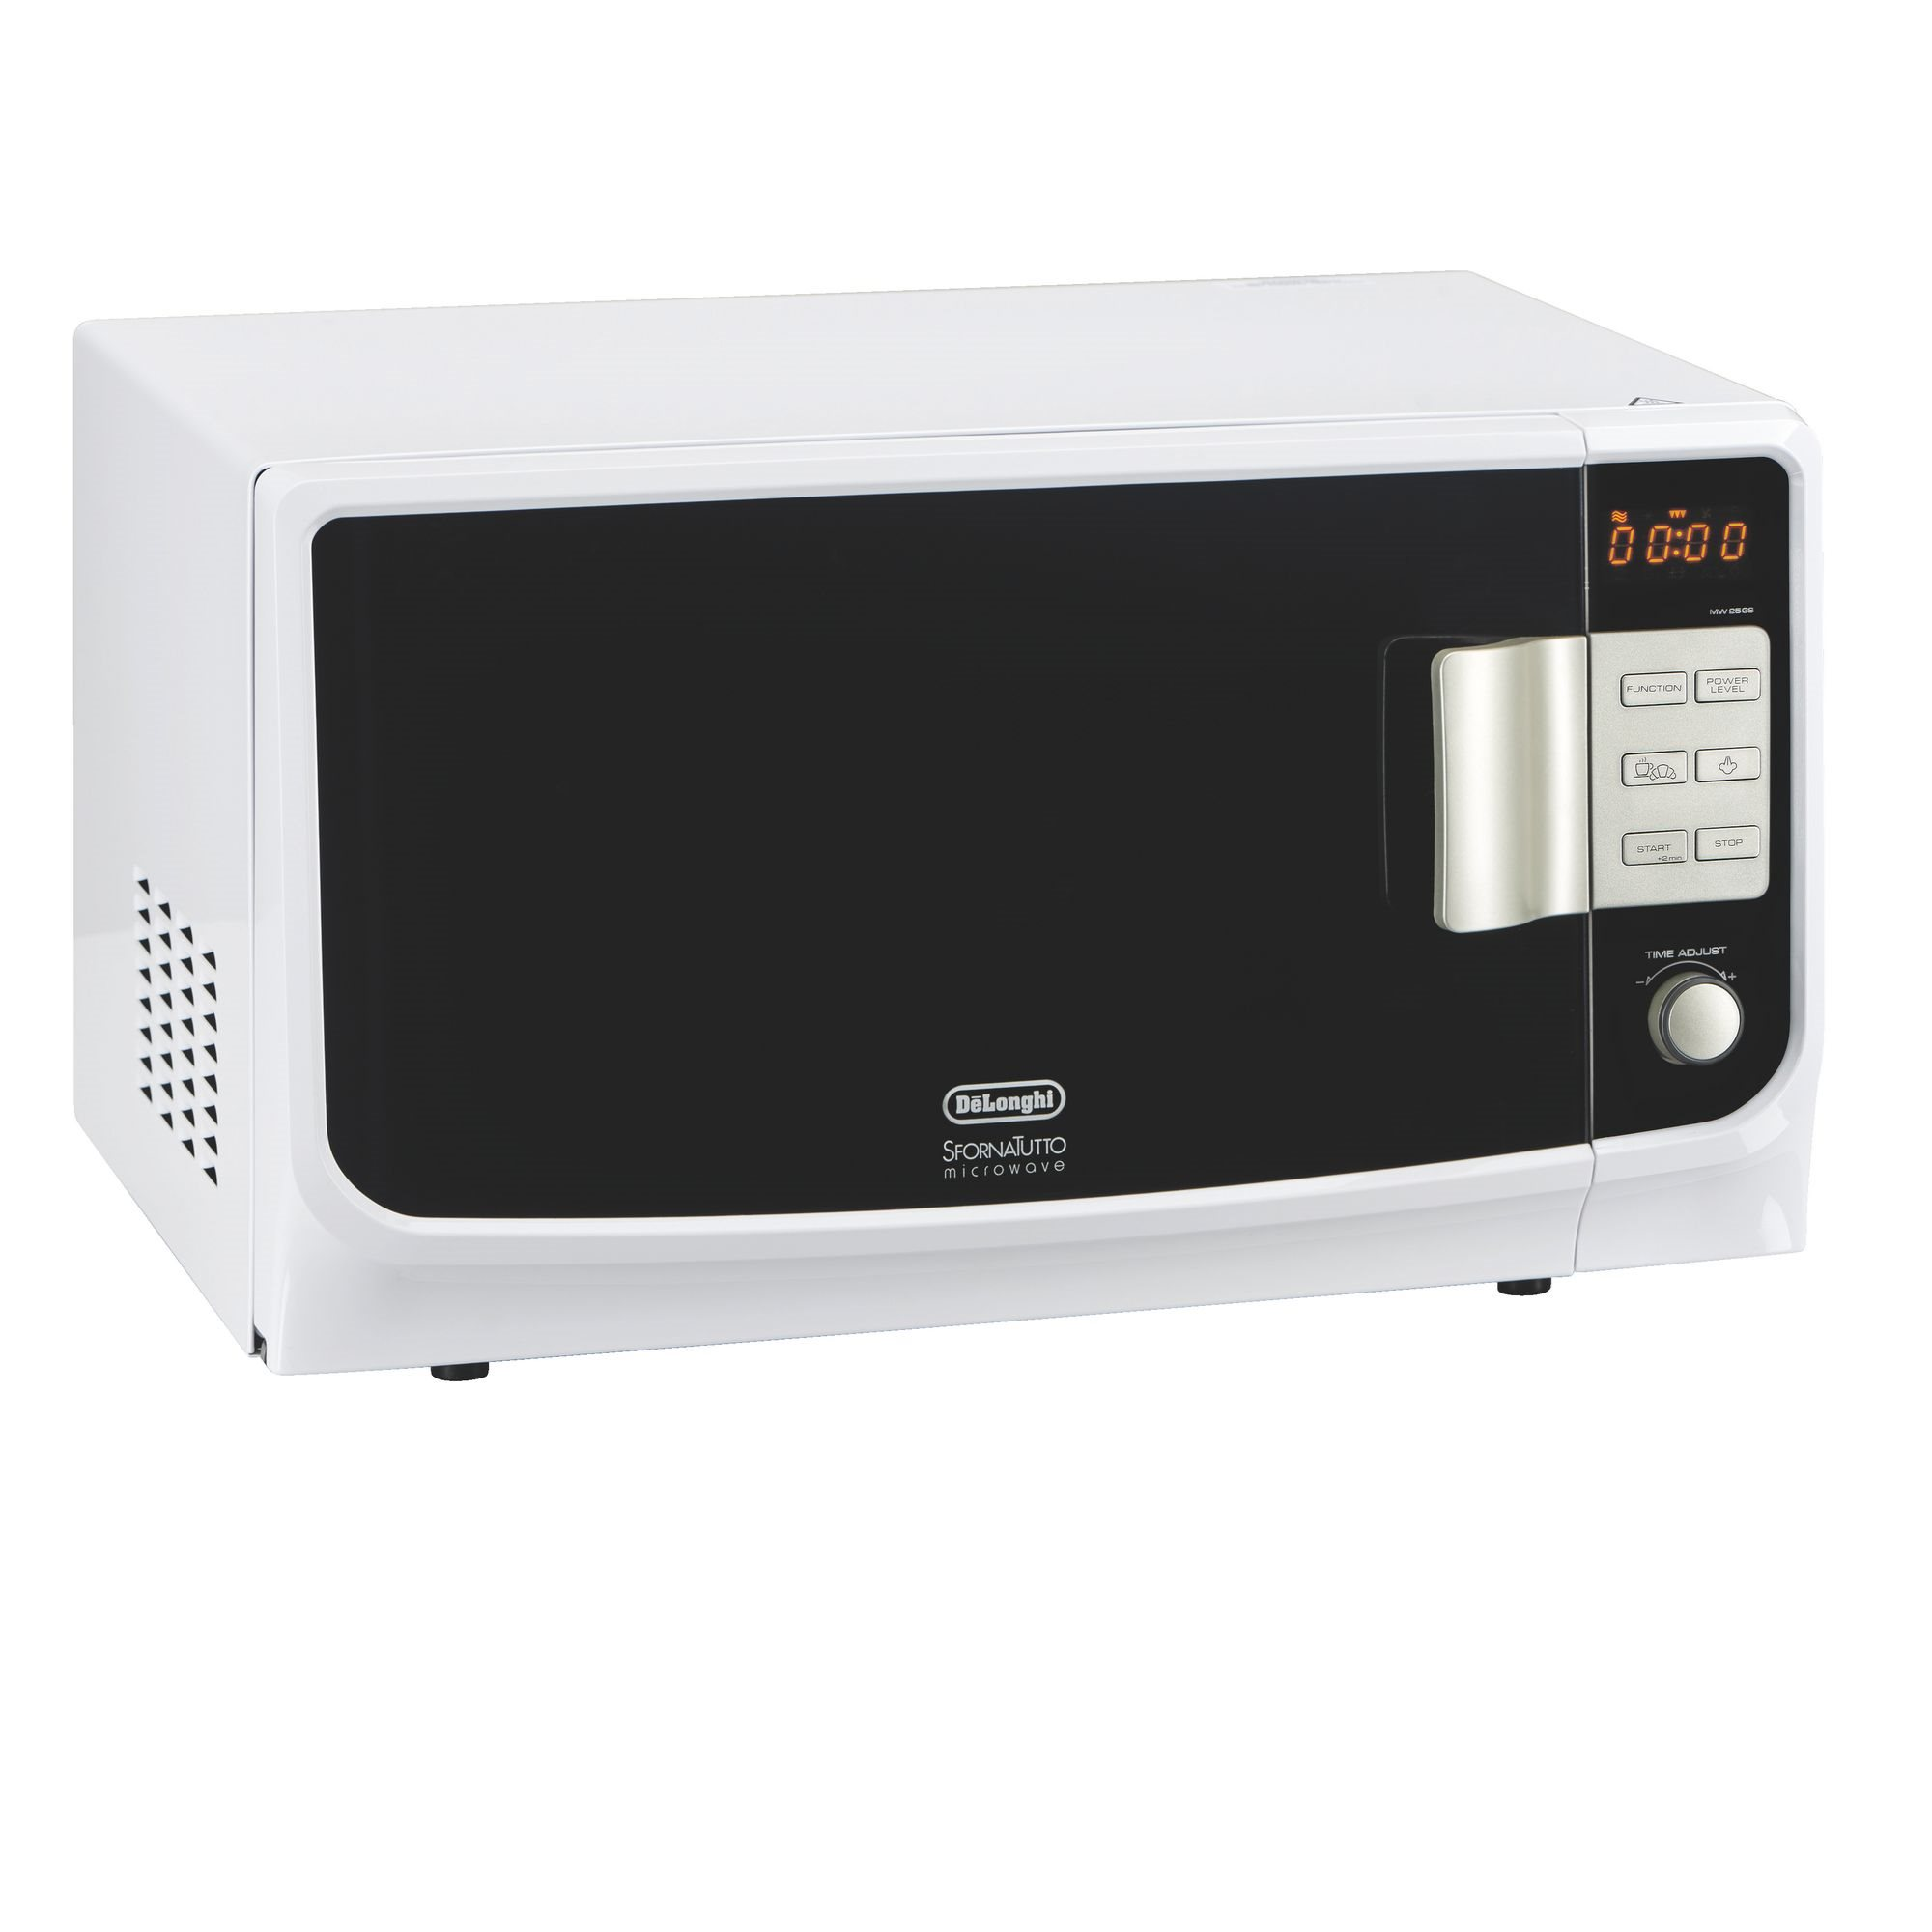 Grill and microwave Delonghi 1000W - model MW20G